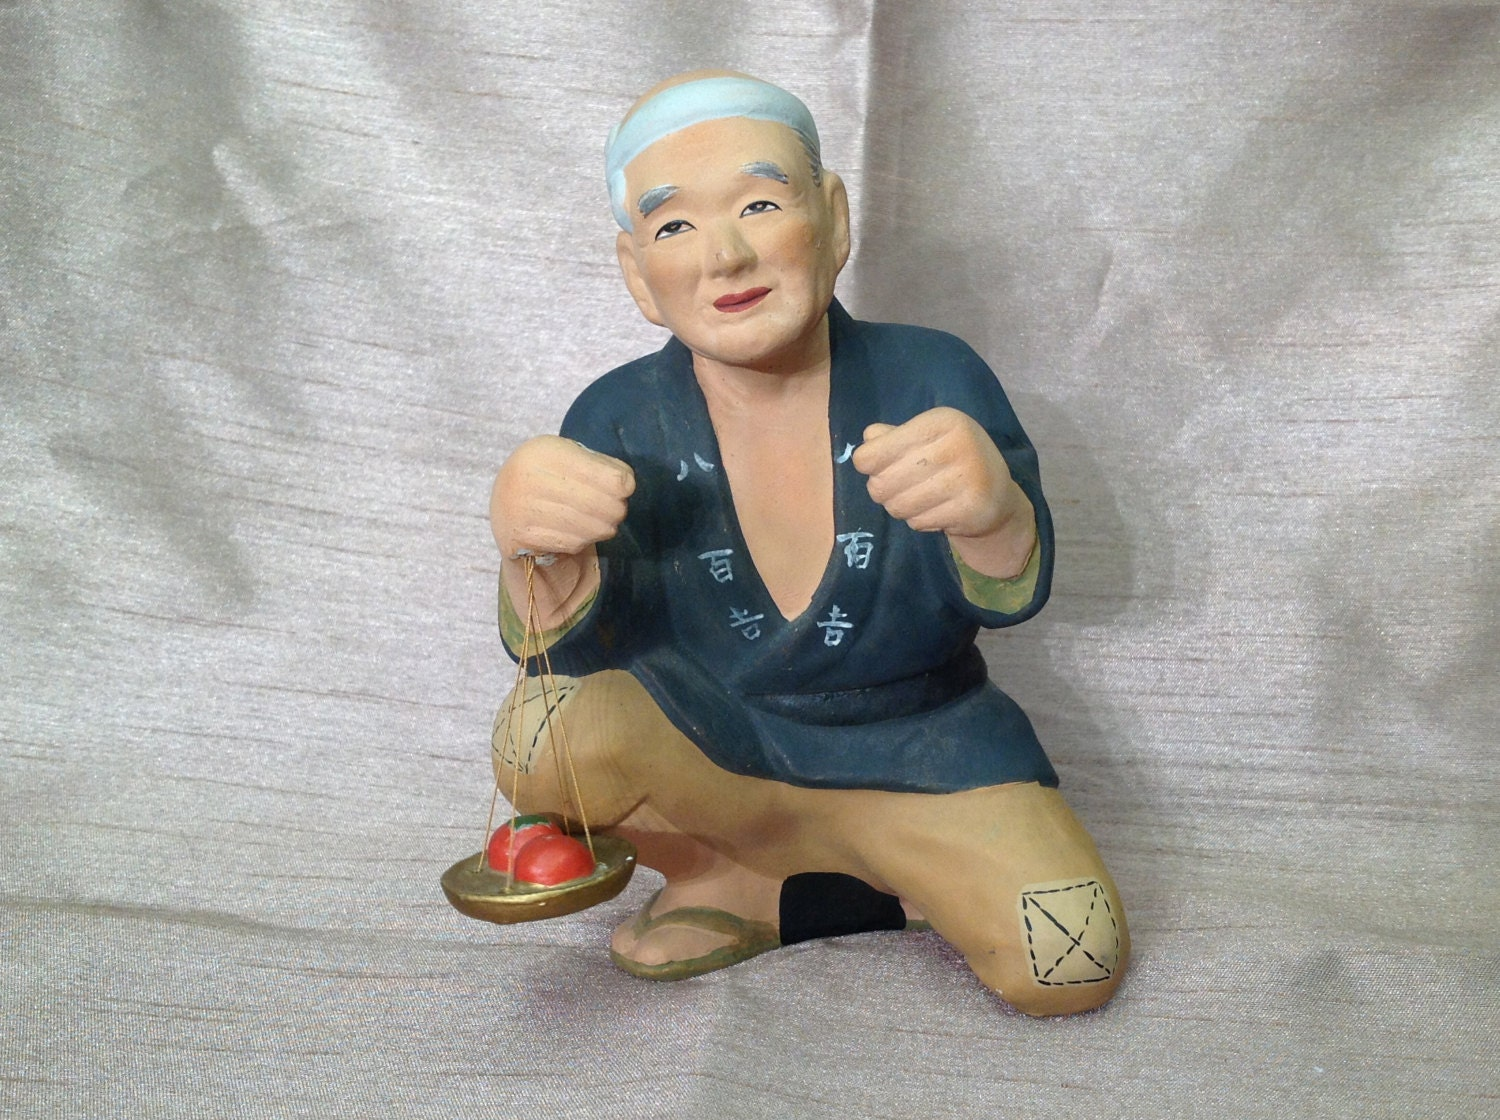 Hakata Urasaki Doll From 1950s Japan Old Man With By